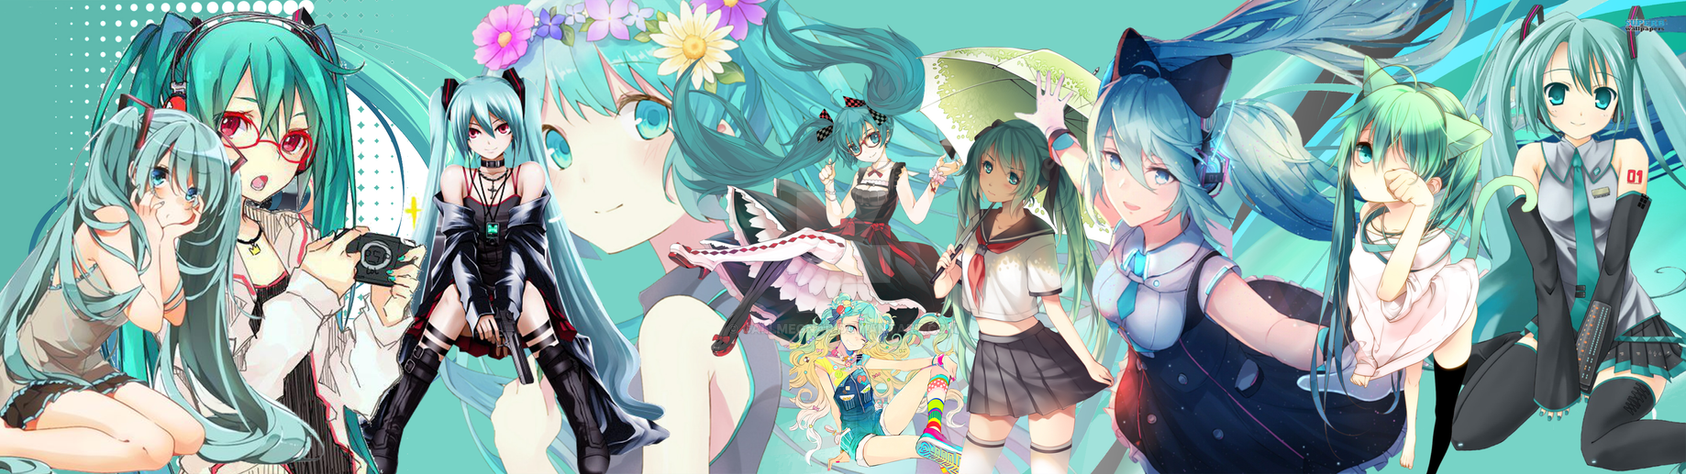 Wallpaper Hatsune Miku by CallmeGNAR